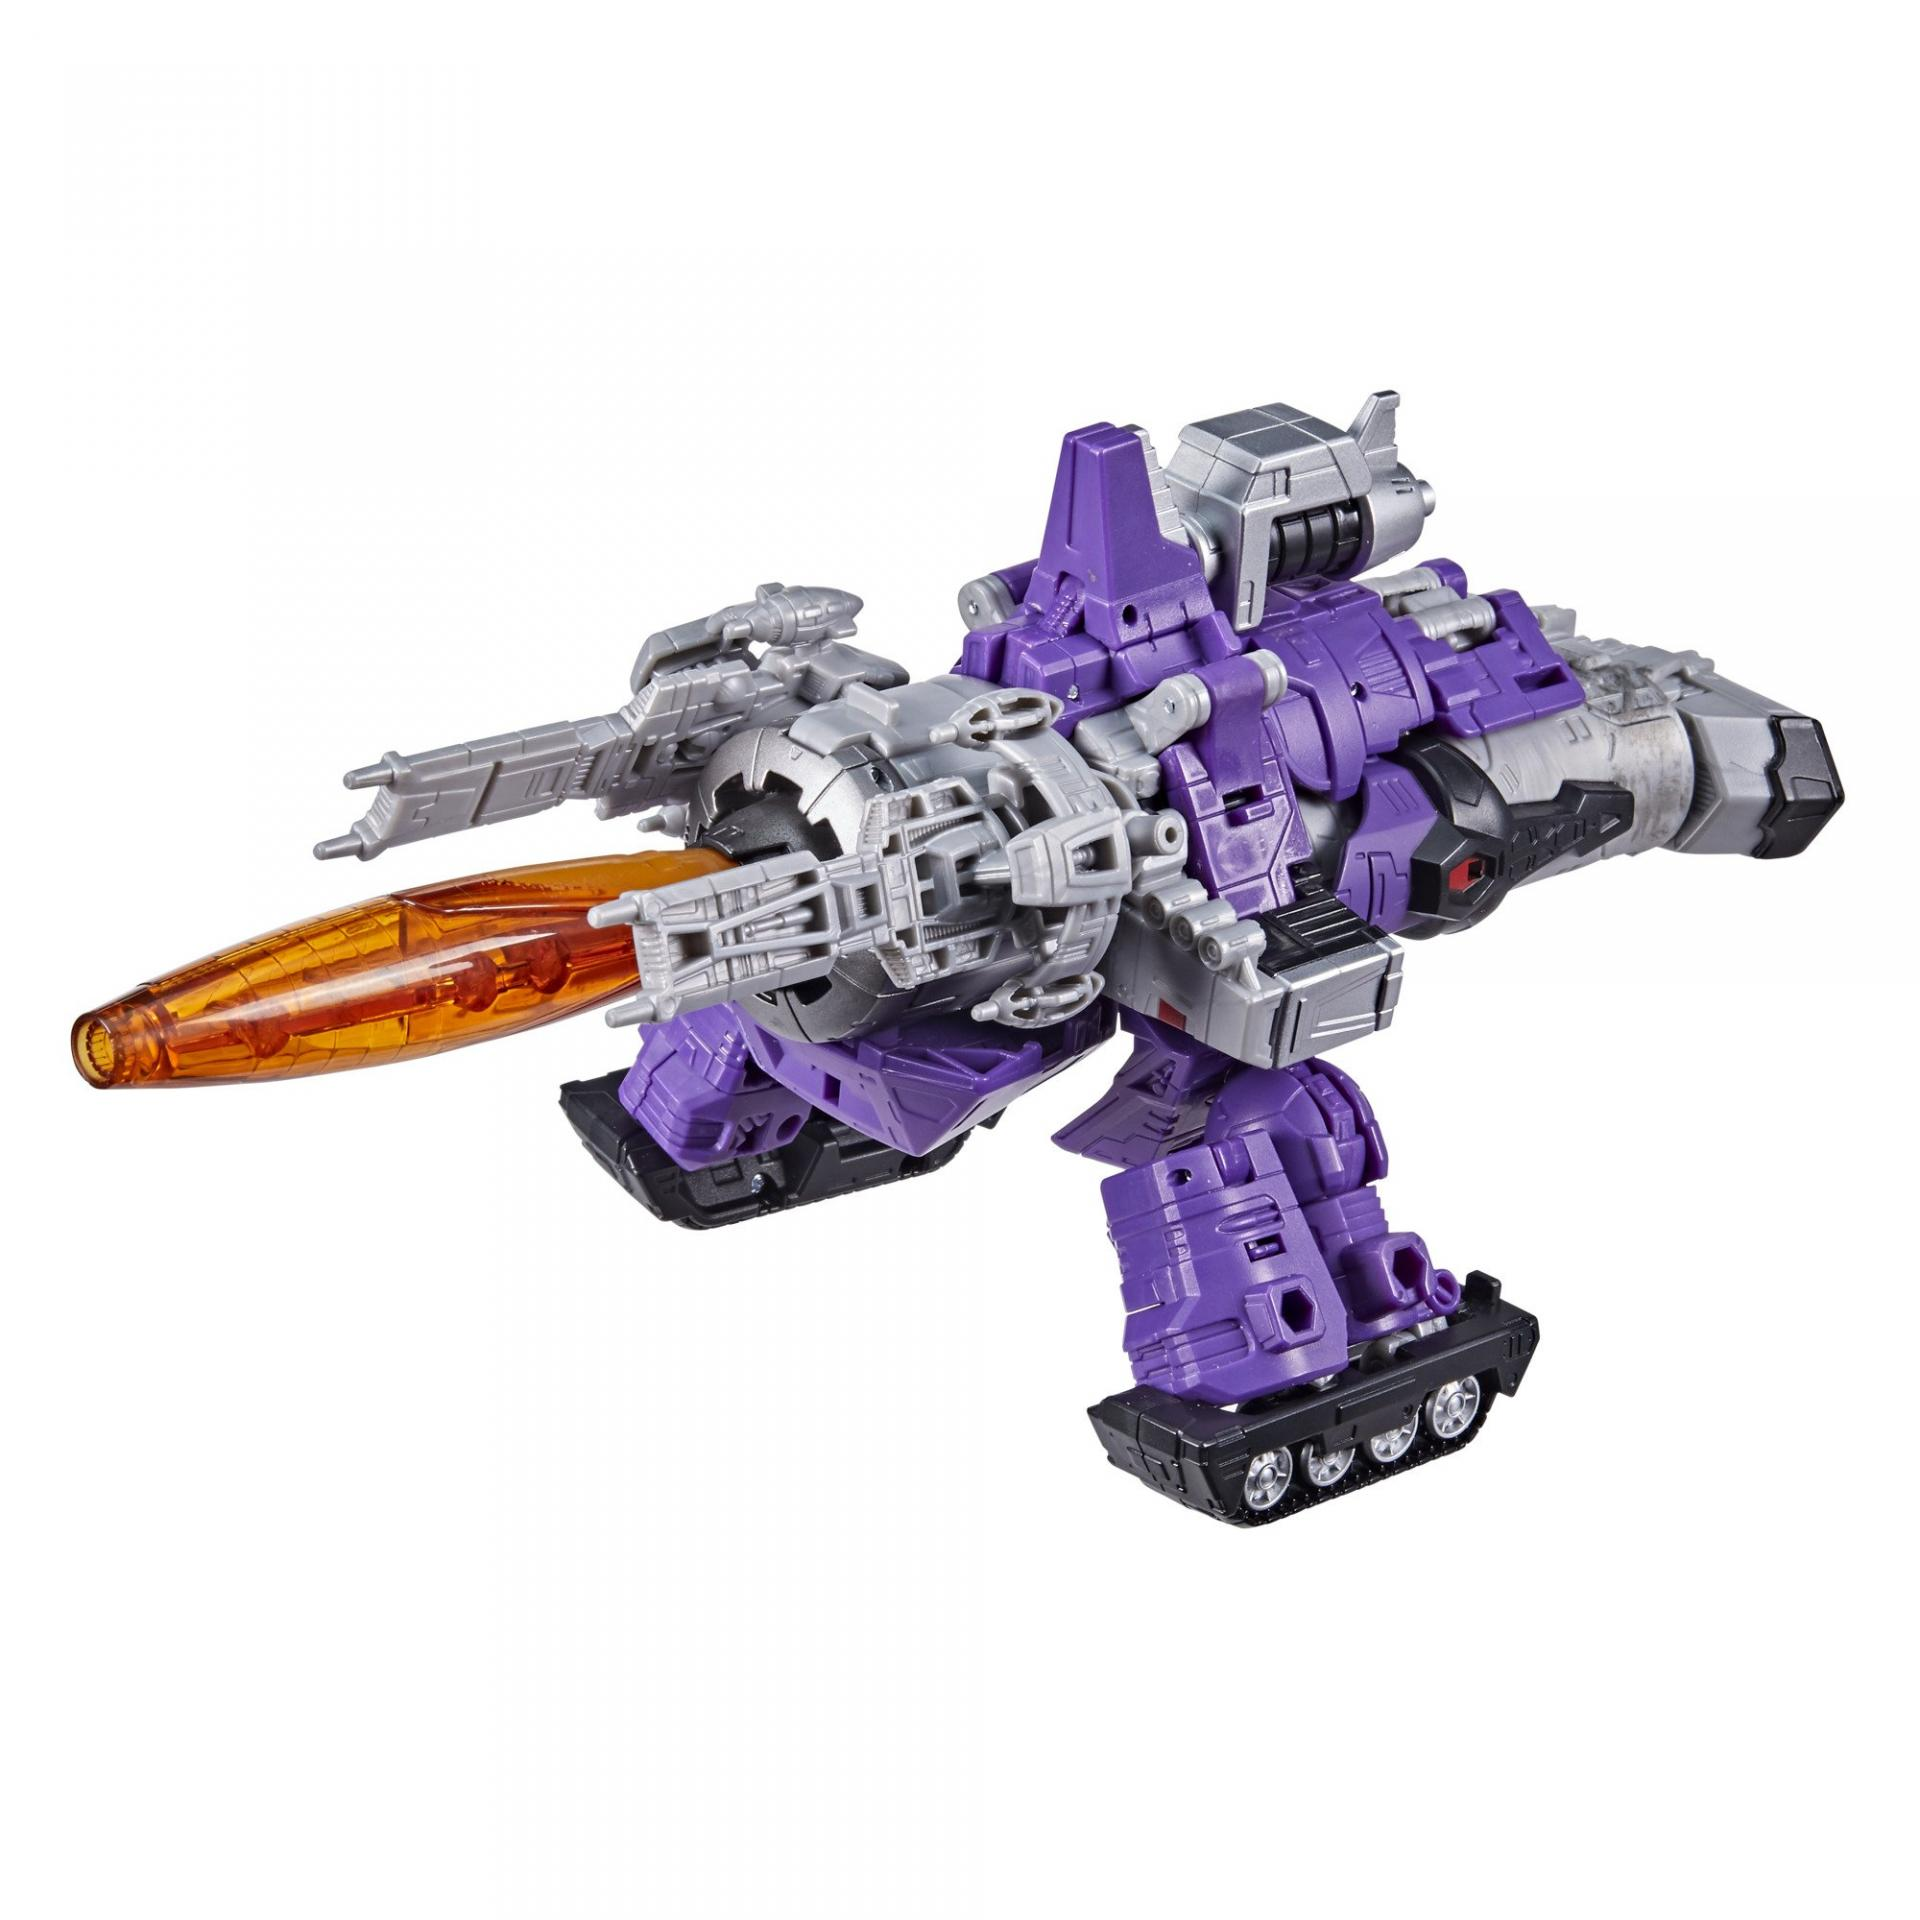 Transformers hasbro generations war for cybertron kingdom leader wfc k28 galvatron9